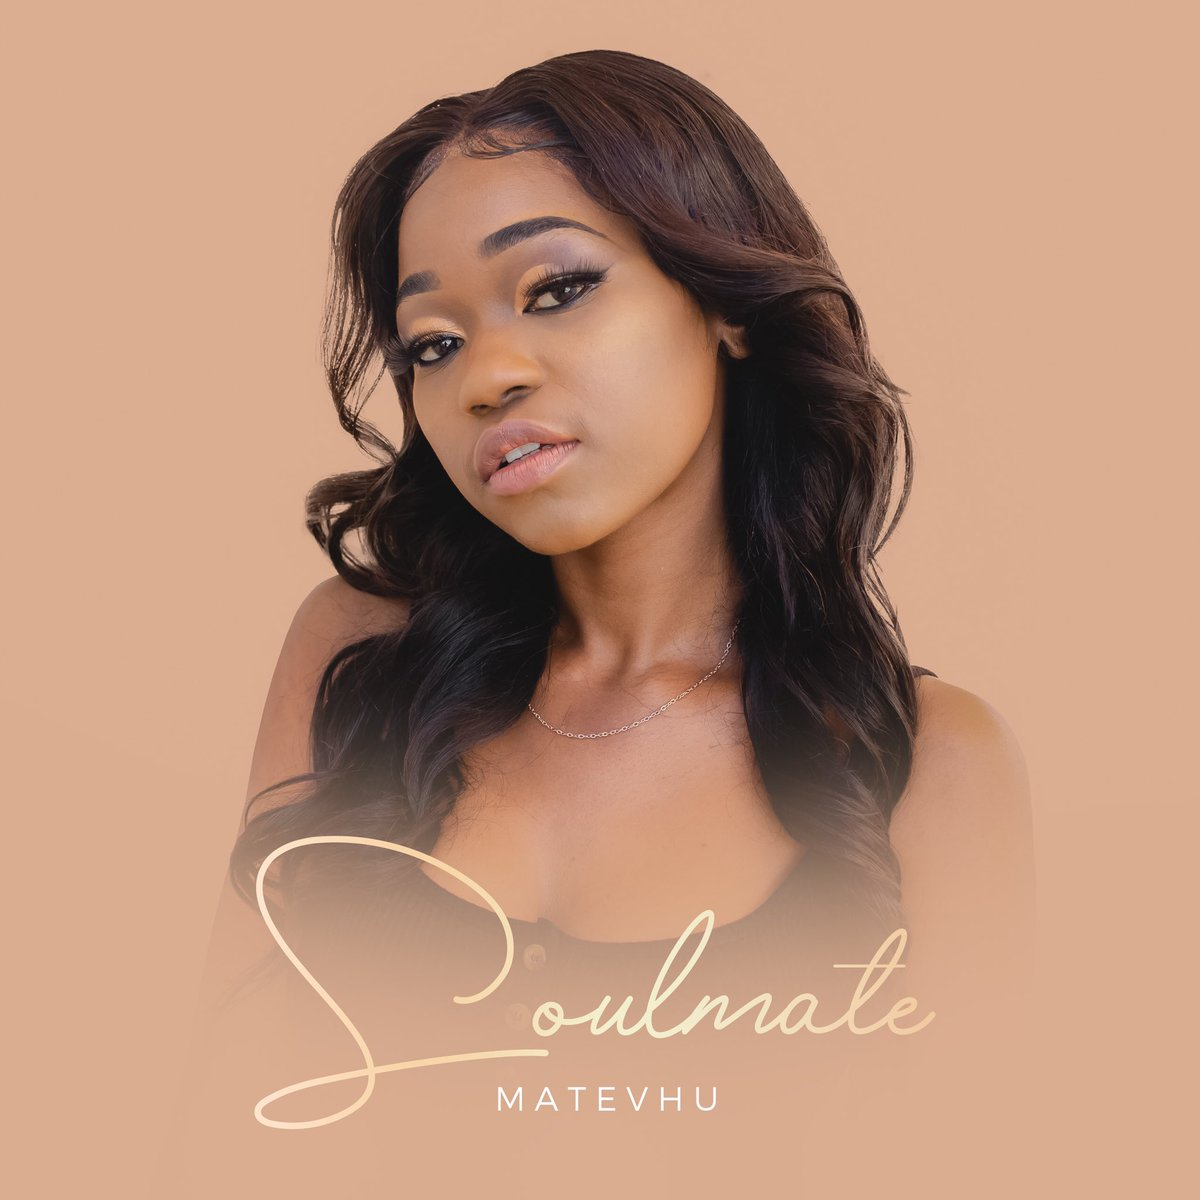 Really grateful for the experience @IdolsSA. Thank y'all so much for the love, really overwhelming🥺  I'm really excited to be sharing this news with you 🤗 I'm gonna be releasing a single by the name Soulmate. Please help me spread this news 🙏🏾 #MatevhuSoulmate https://t.co/43x7zrjD0s